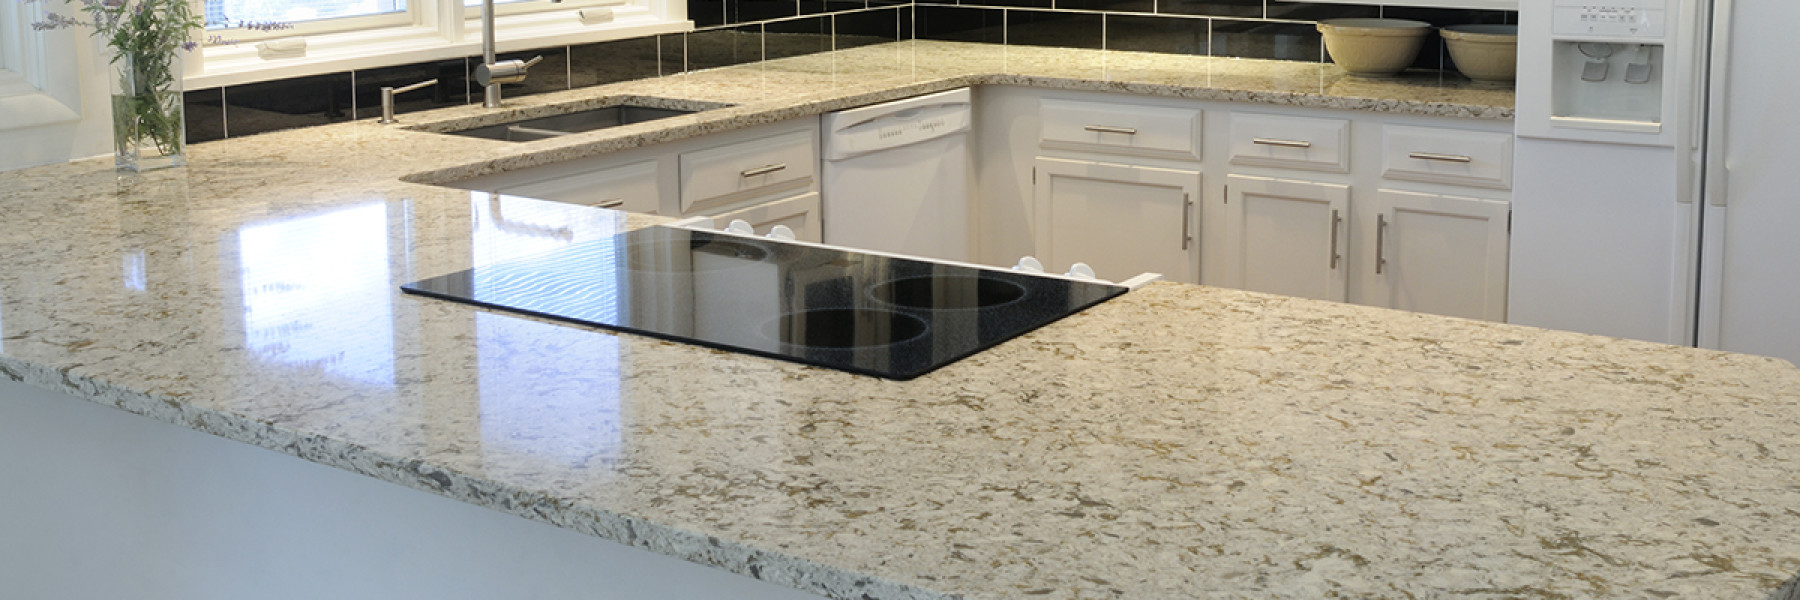 Beau Wholesale Granite Supplier | Helios Granite | Granite Supplier